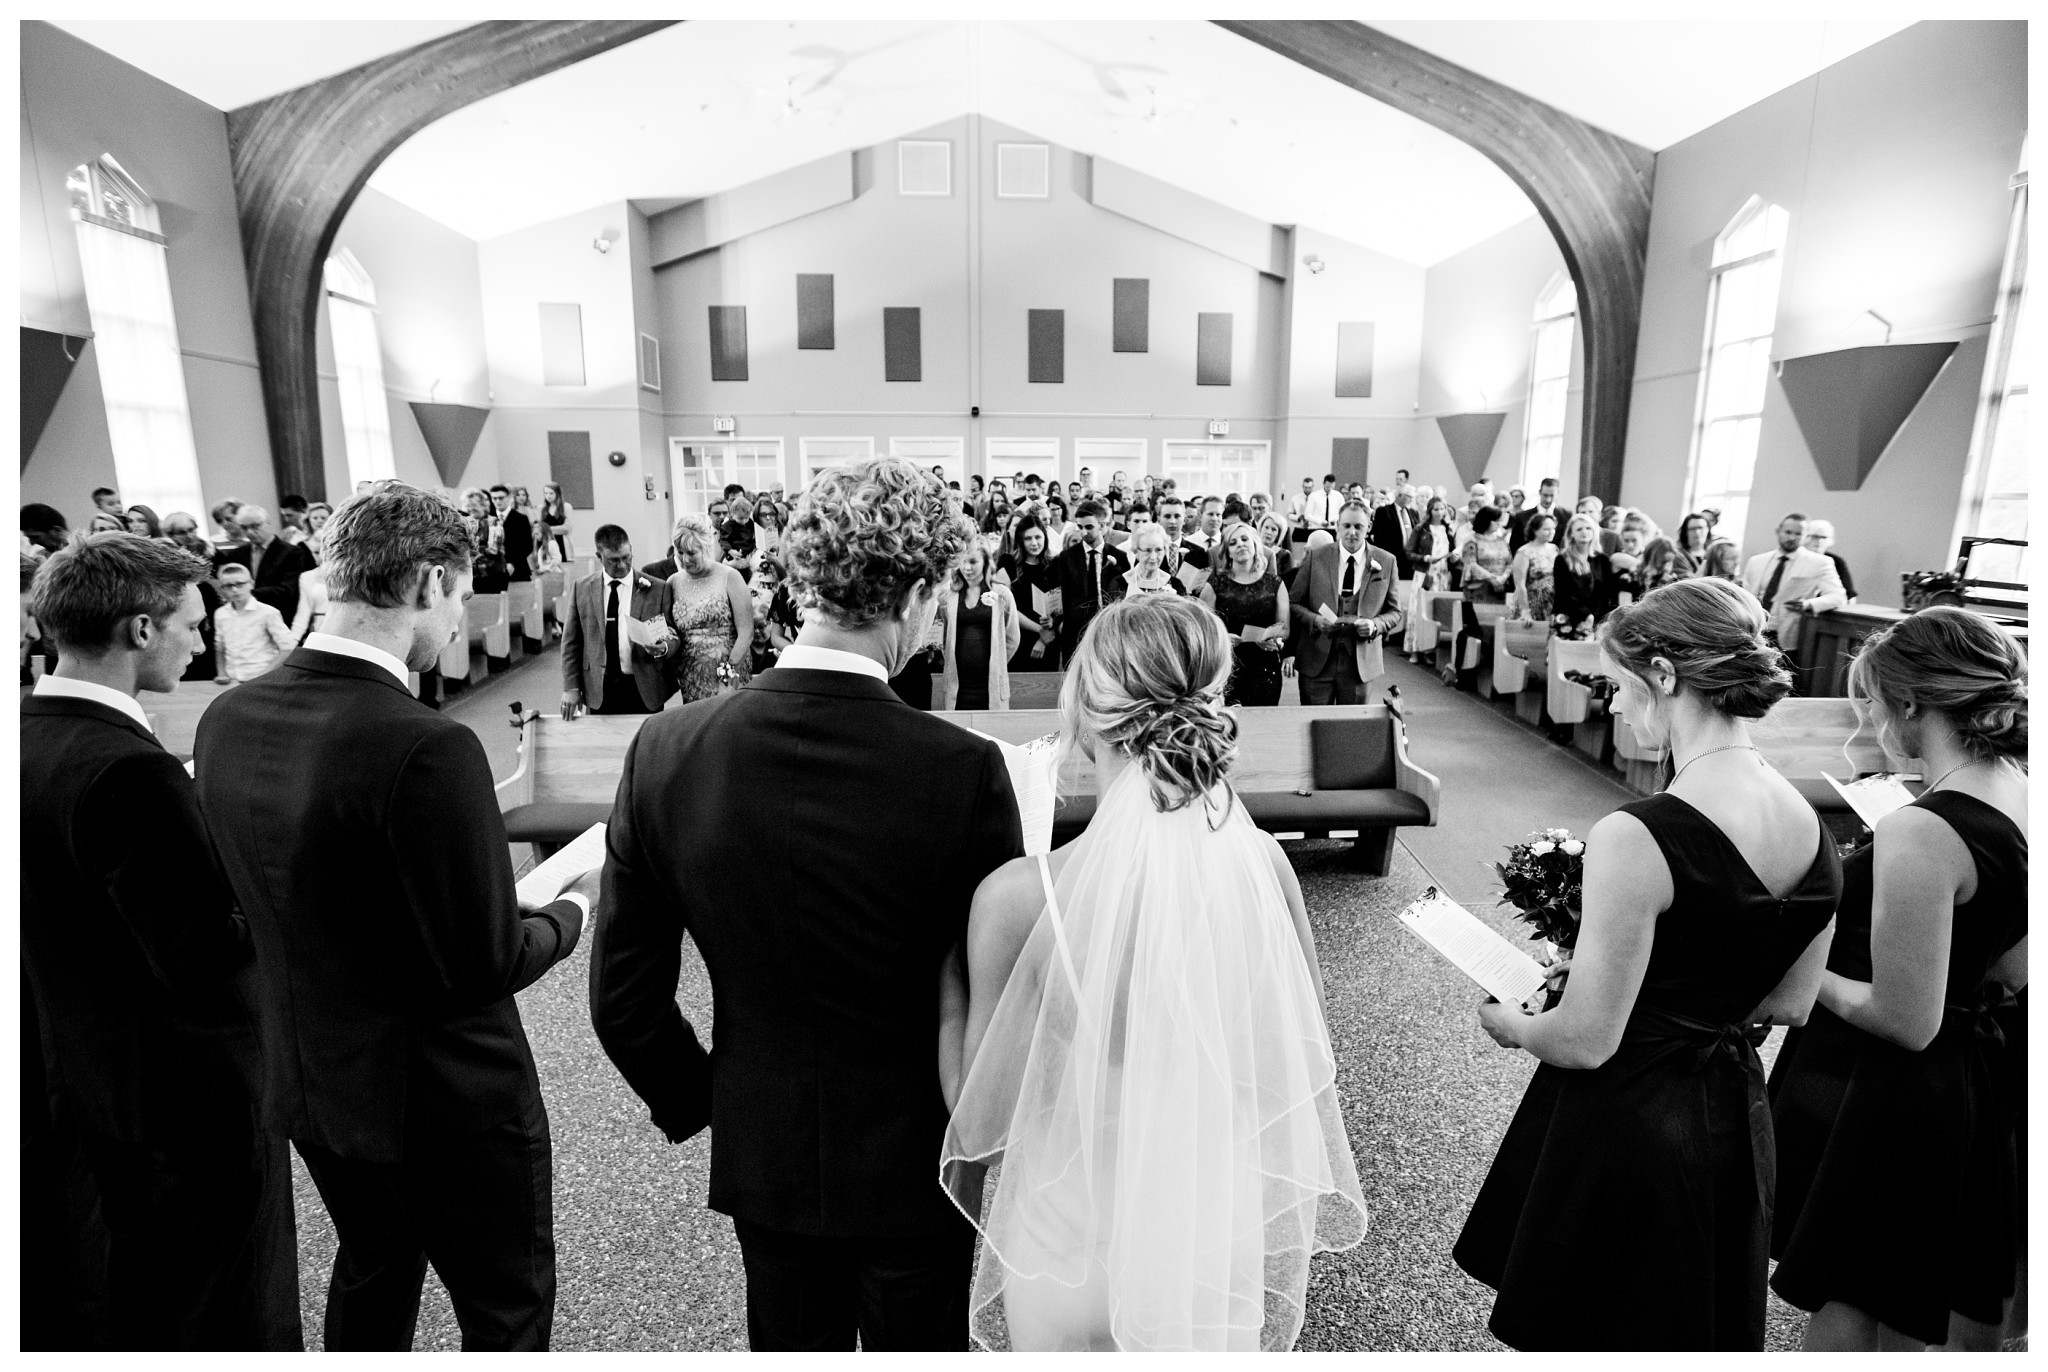 Campbell Valley Park Wedding Photographer Canadian Reformed Church Willoughby Heights Christian Fall Burgundy Navy Roses Wedding_0027.jpg